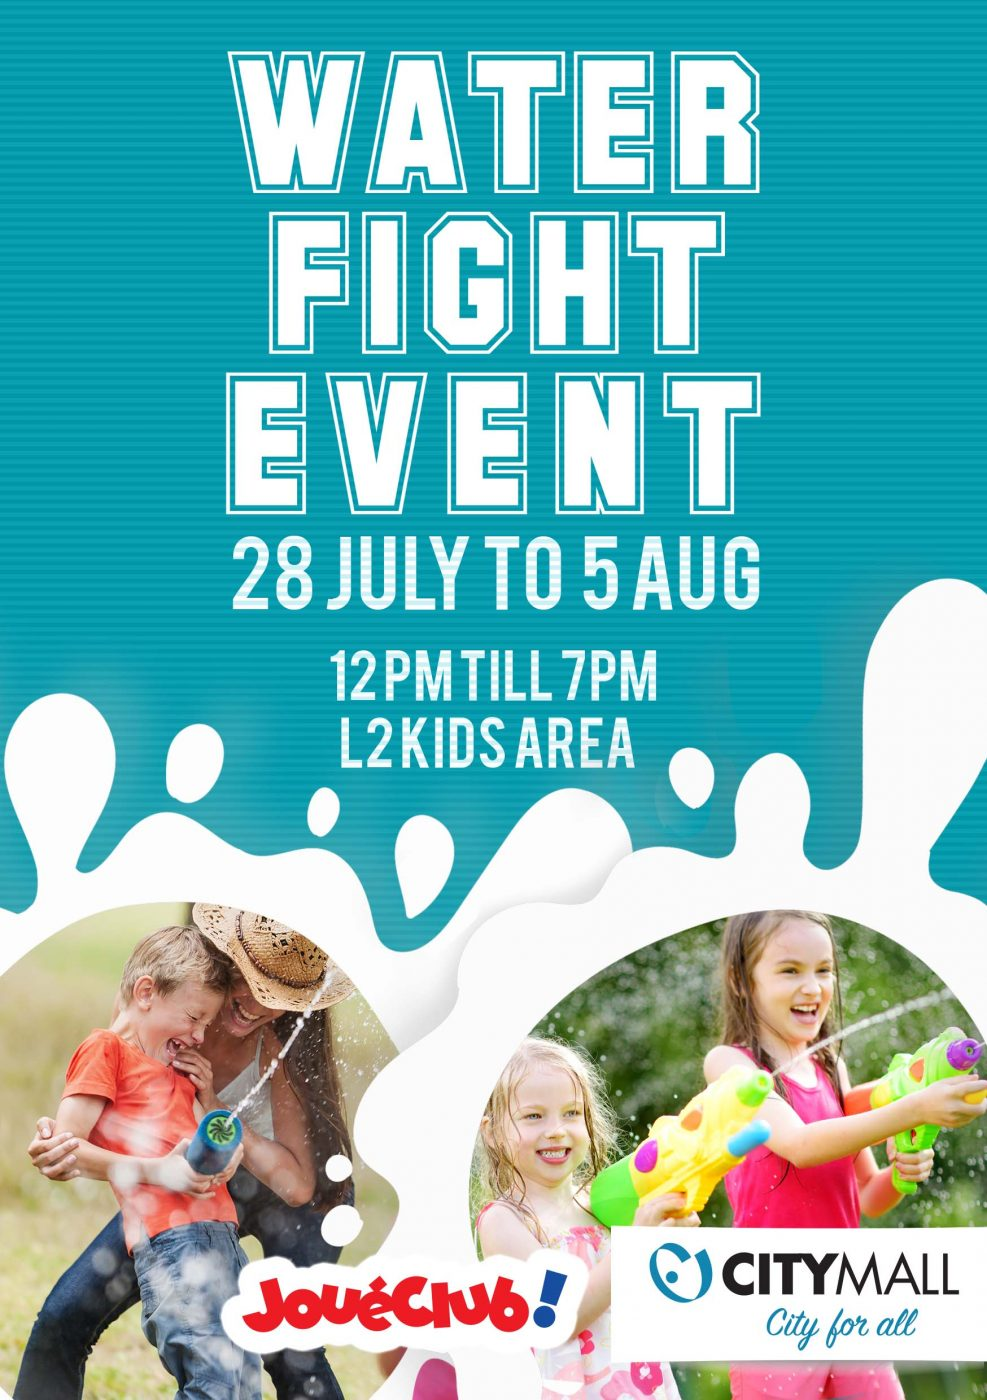 WATER FIGHT EVENT